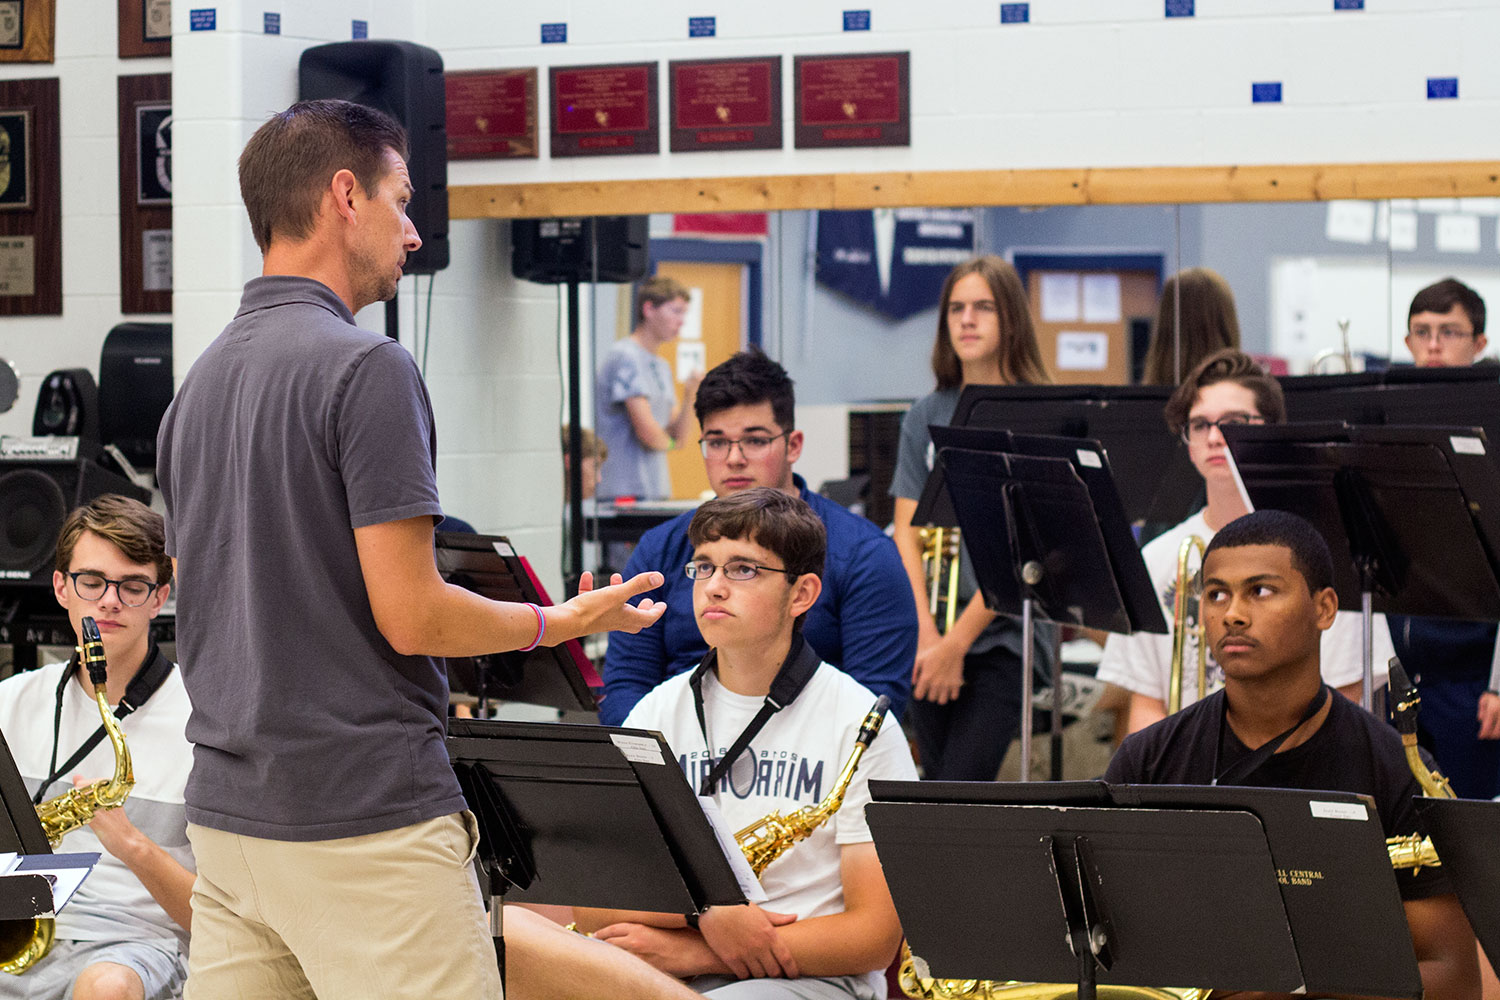 Mr. Nathan Griffin speaks with members of one of the school bands.  The Jazz Band is in search of a bass player to round out its sound.